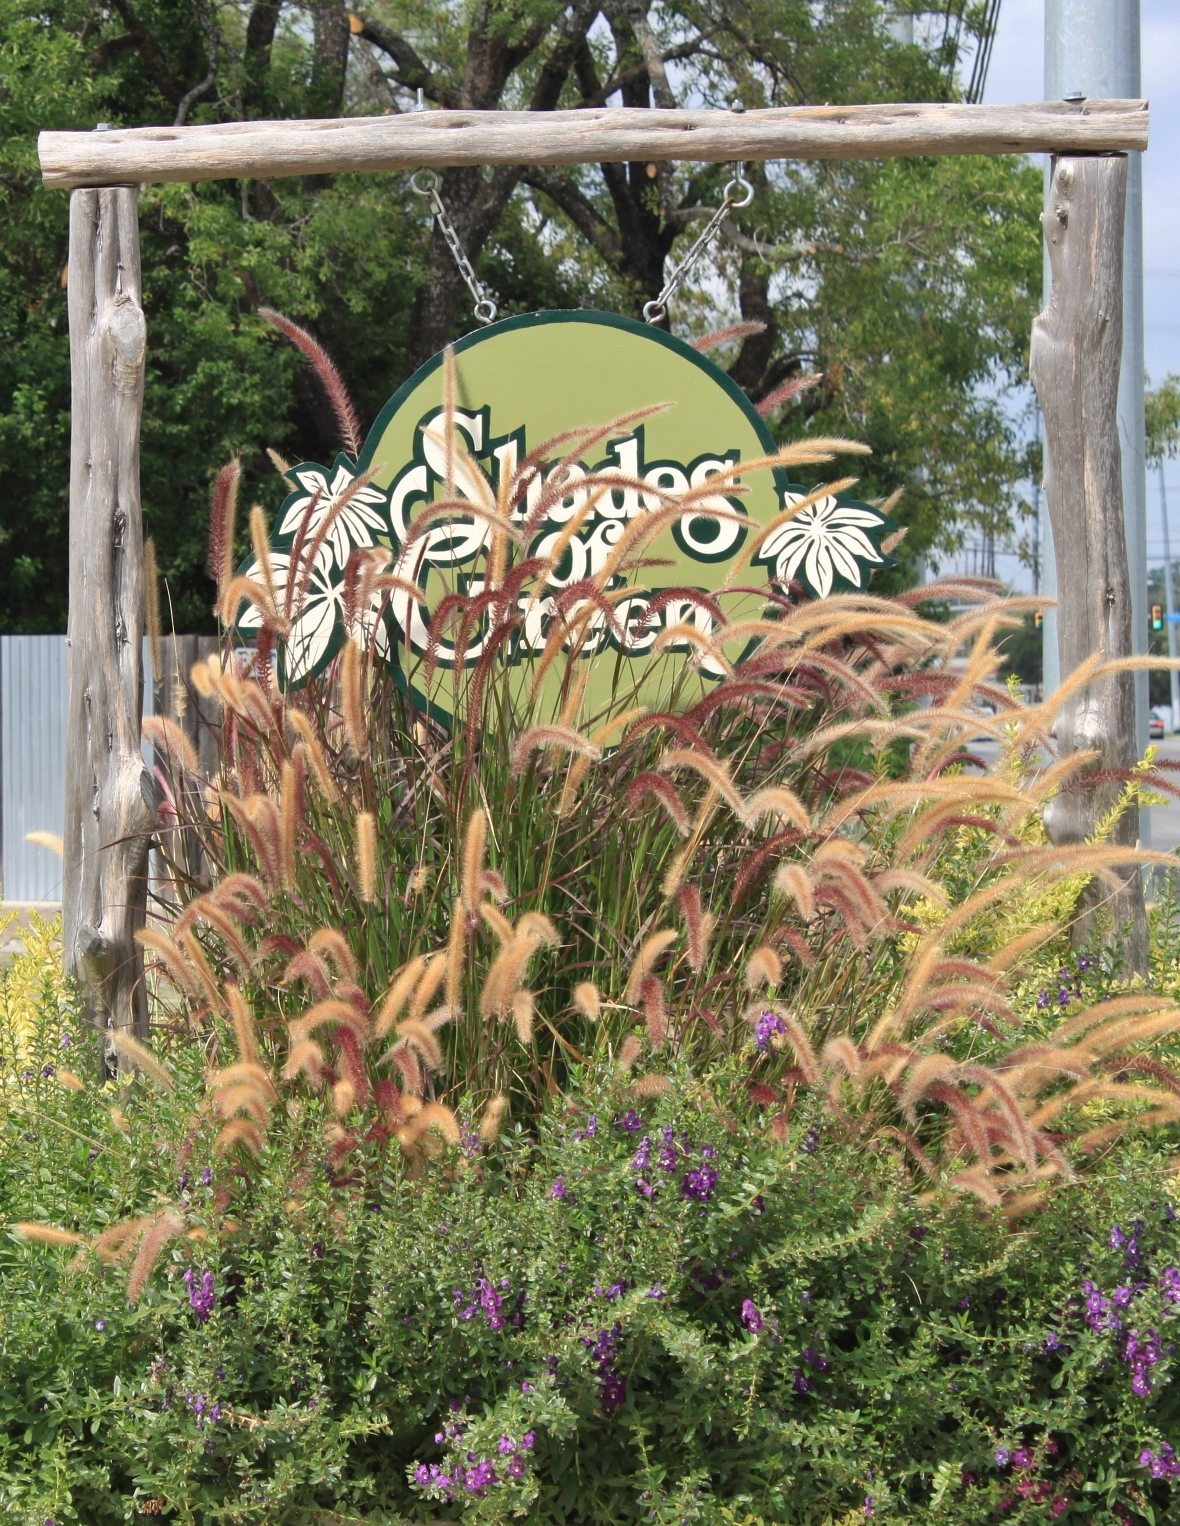 Our First Stop This Year Is Shades Of Green A Beautiful Nursery Northeast Downtown Near The Upscale Quarry Ping Area In San Antonio